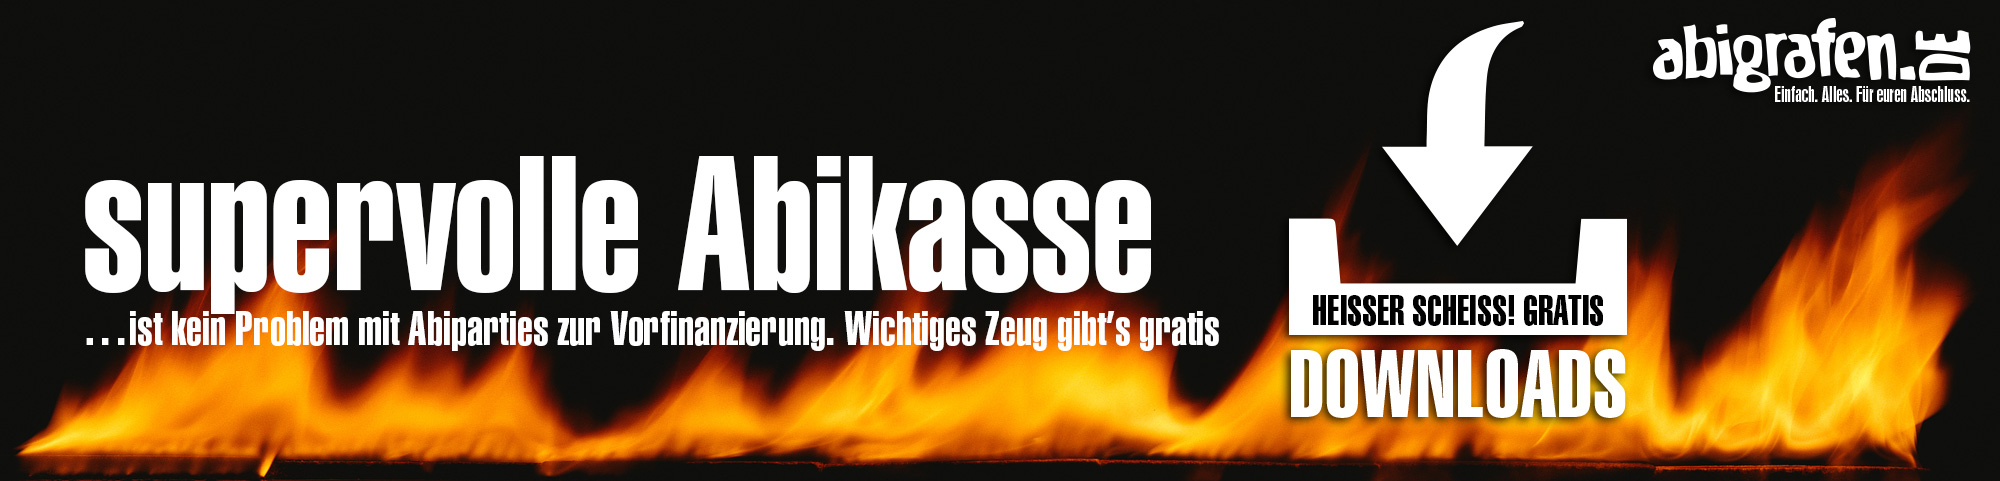 gratis Downloads für Abiparties